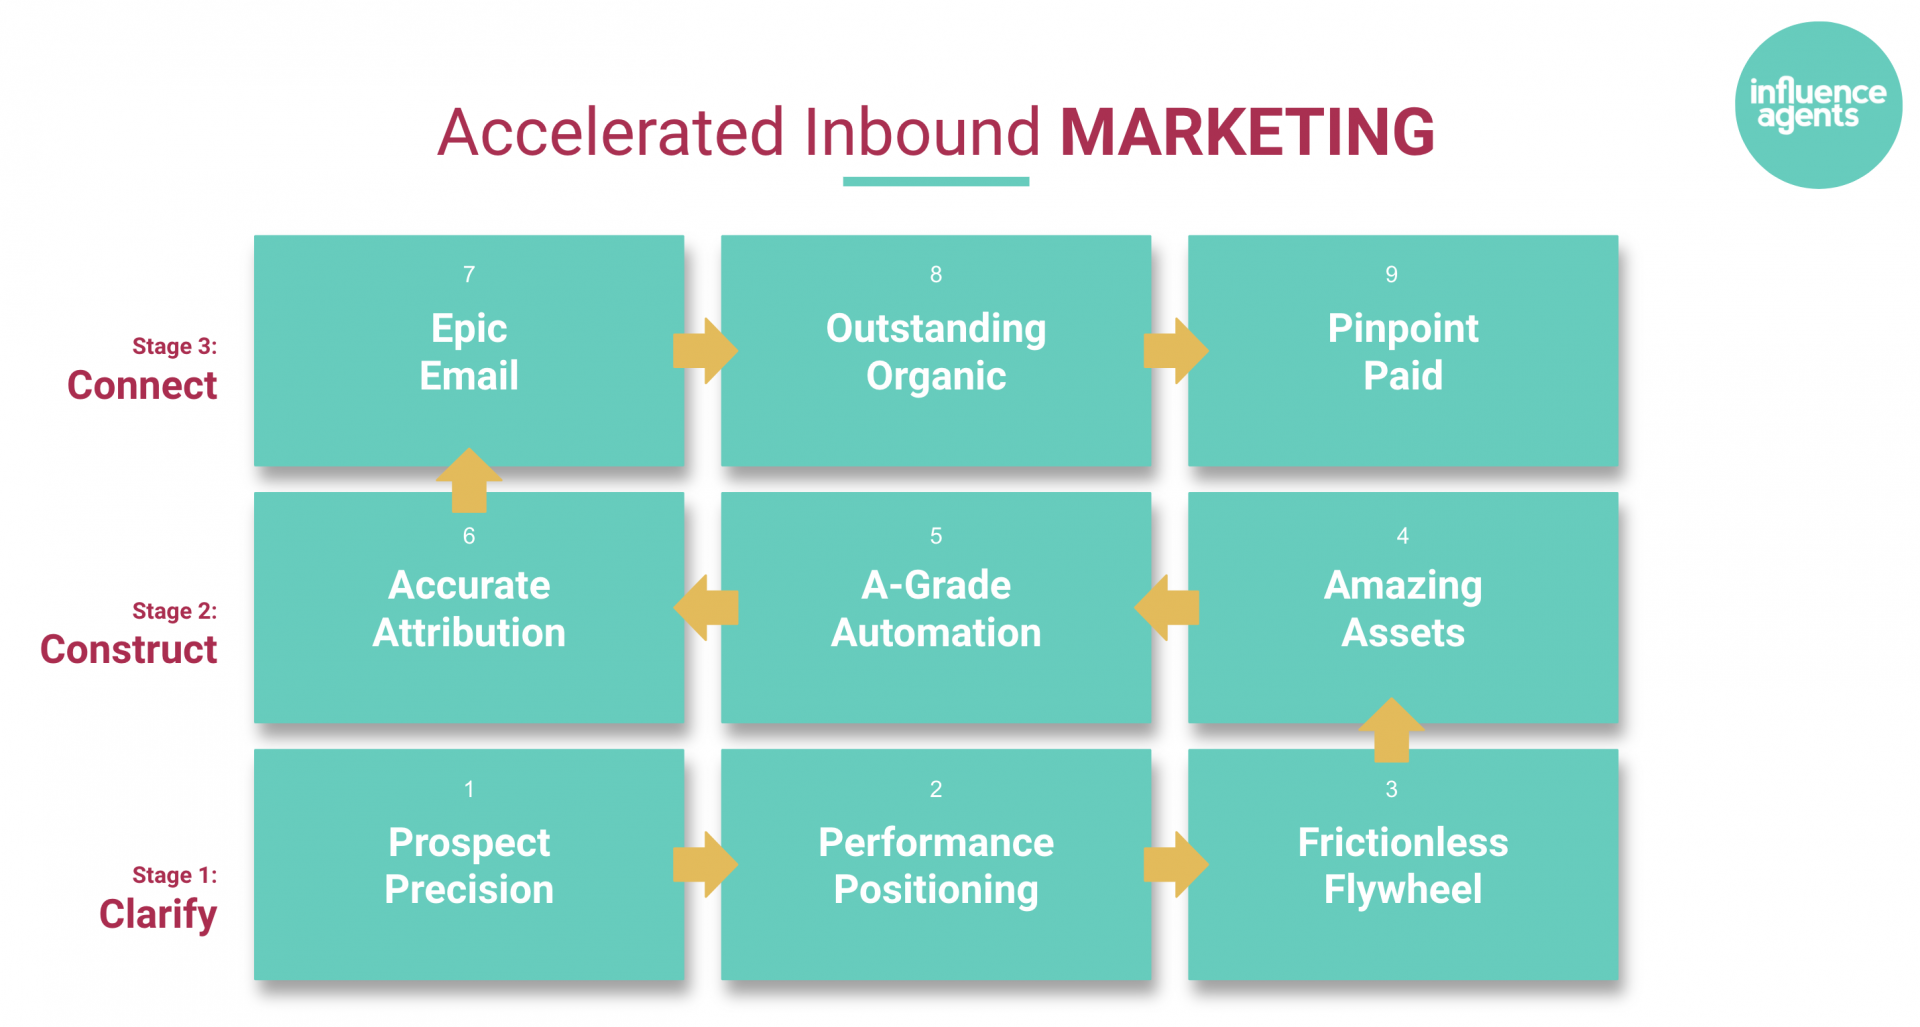 Accelerated Inbound Marketing - 9 box model